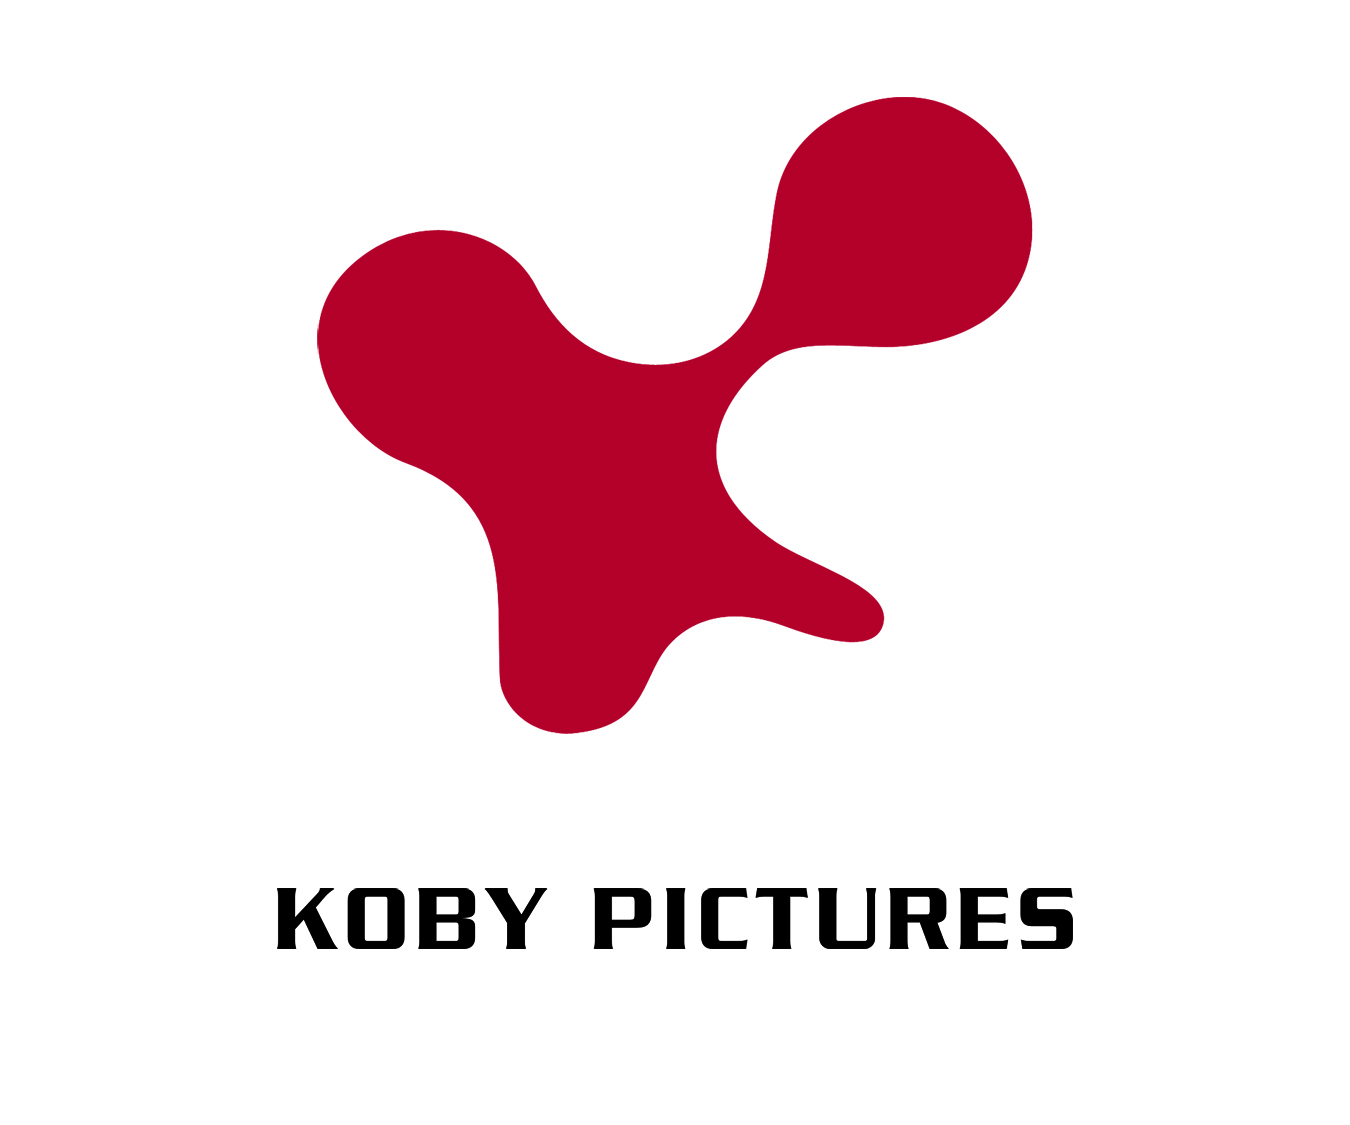 KOBY PICTURES